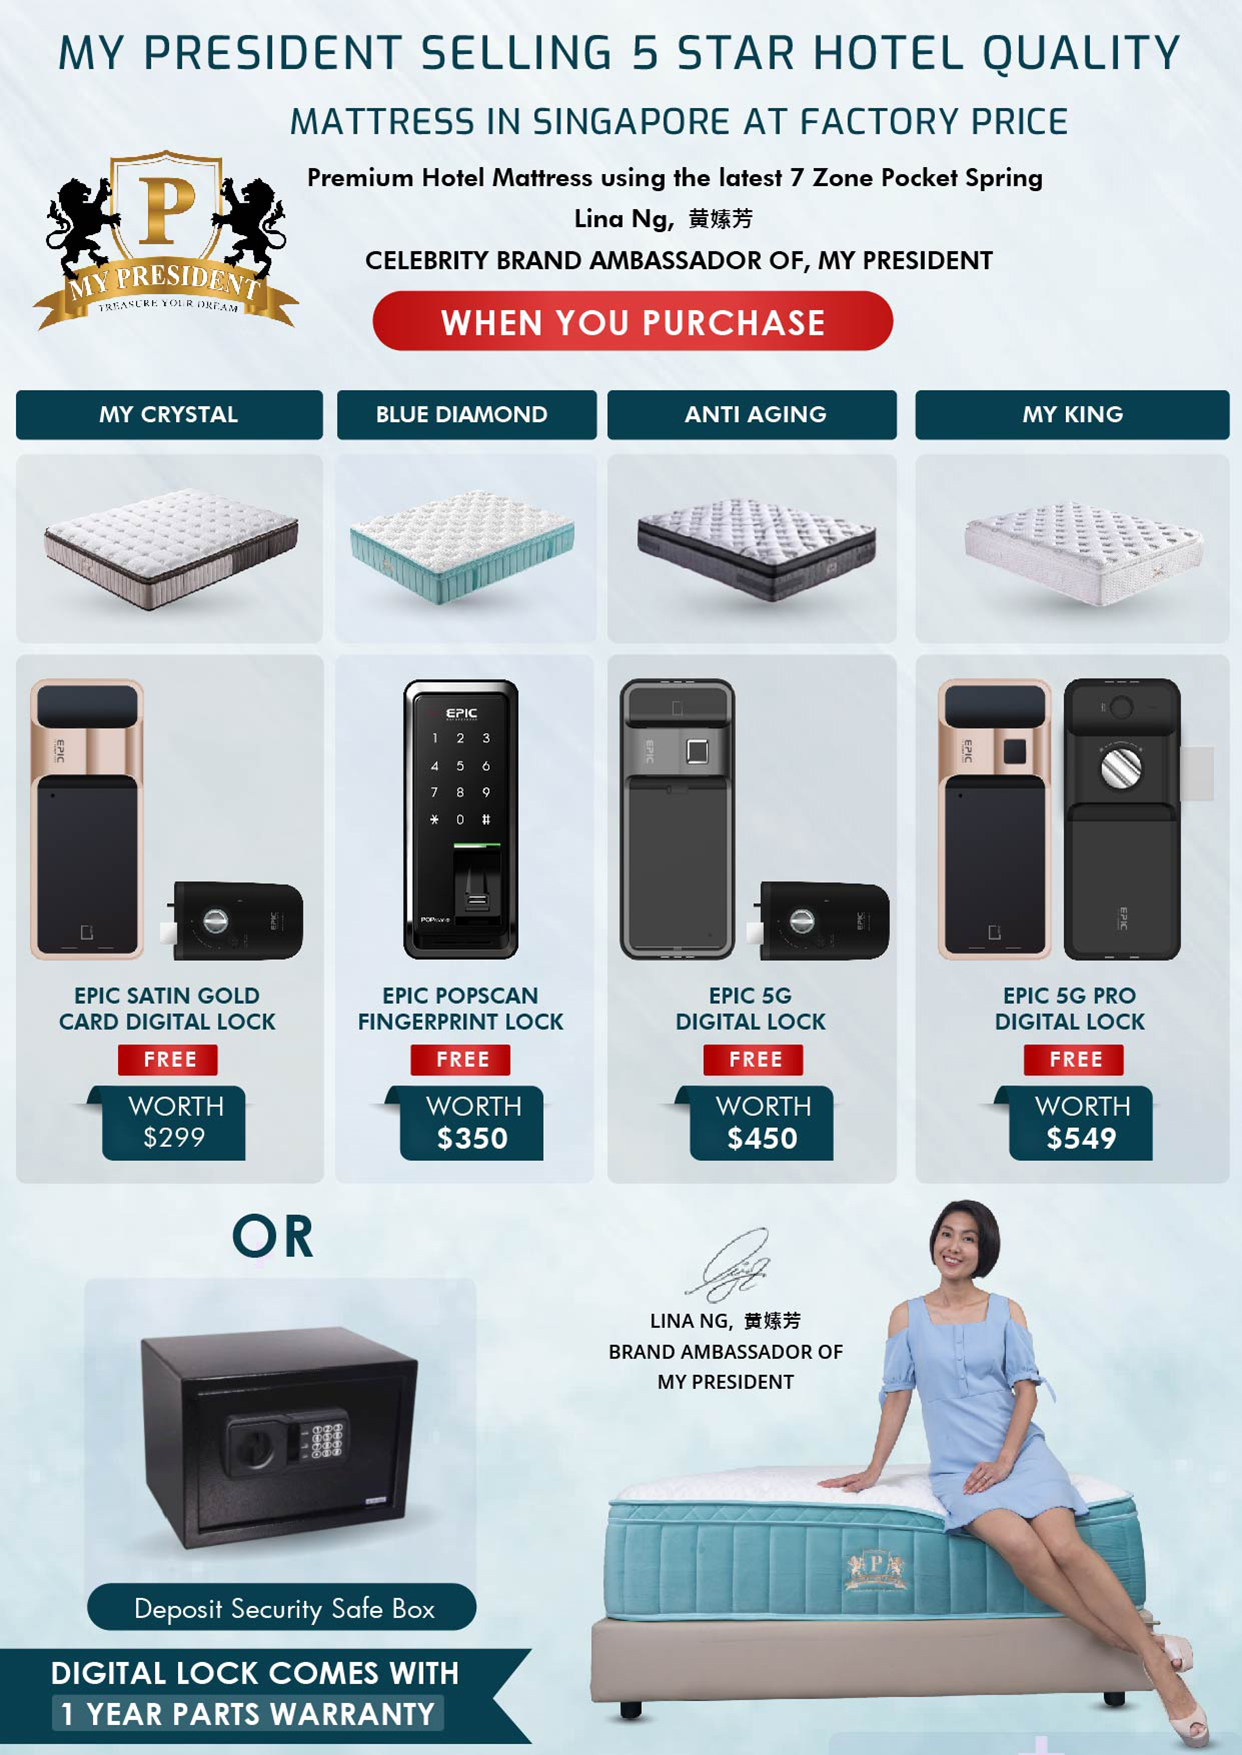 My President Mattress_Free Gifts Digital Lock comes with 1-year